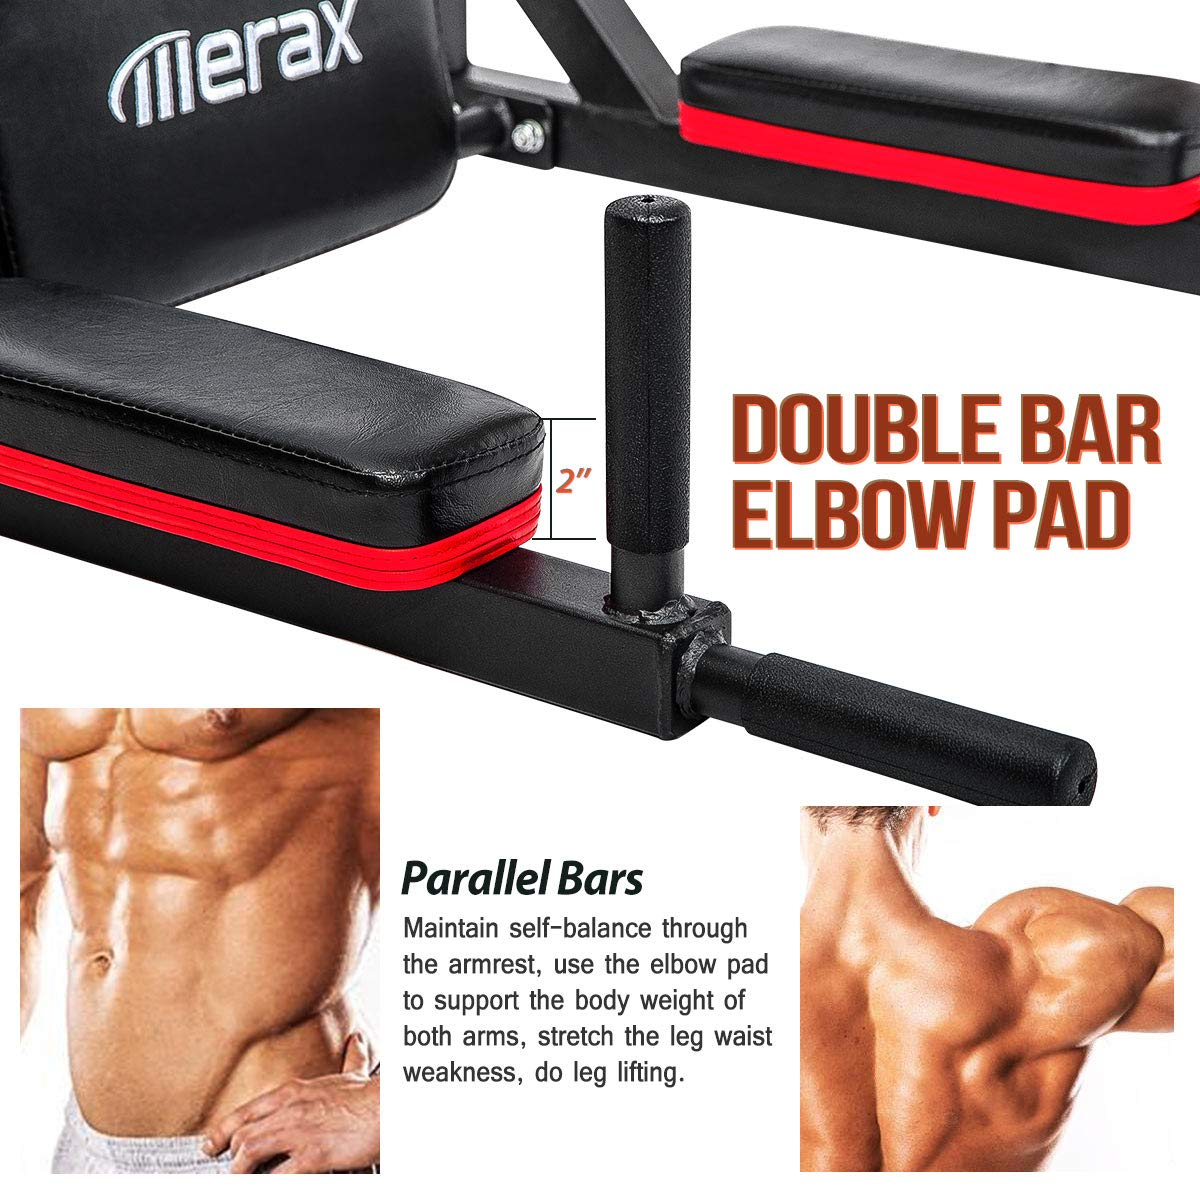 Merax Wall Mounted Pull-Up Bar - Multi-Grip Chin-Up Bar Dip Stand Power Tower Set for Home Gym Strength Training Equipment [Supports 440LBS] (Black & Red) by Merax (Image #4)